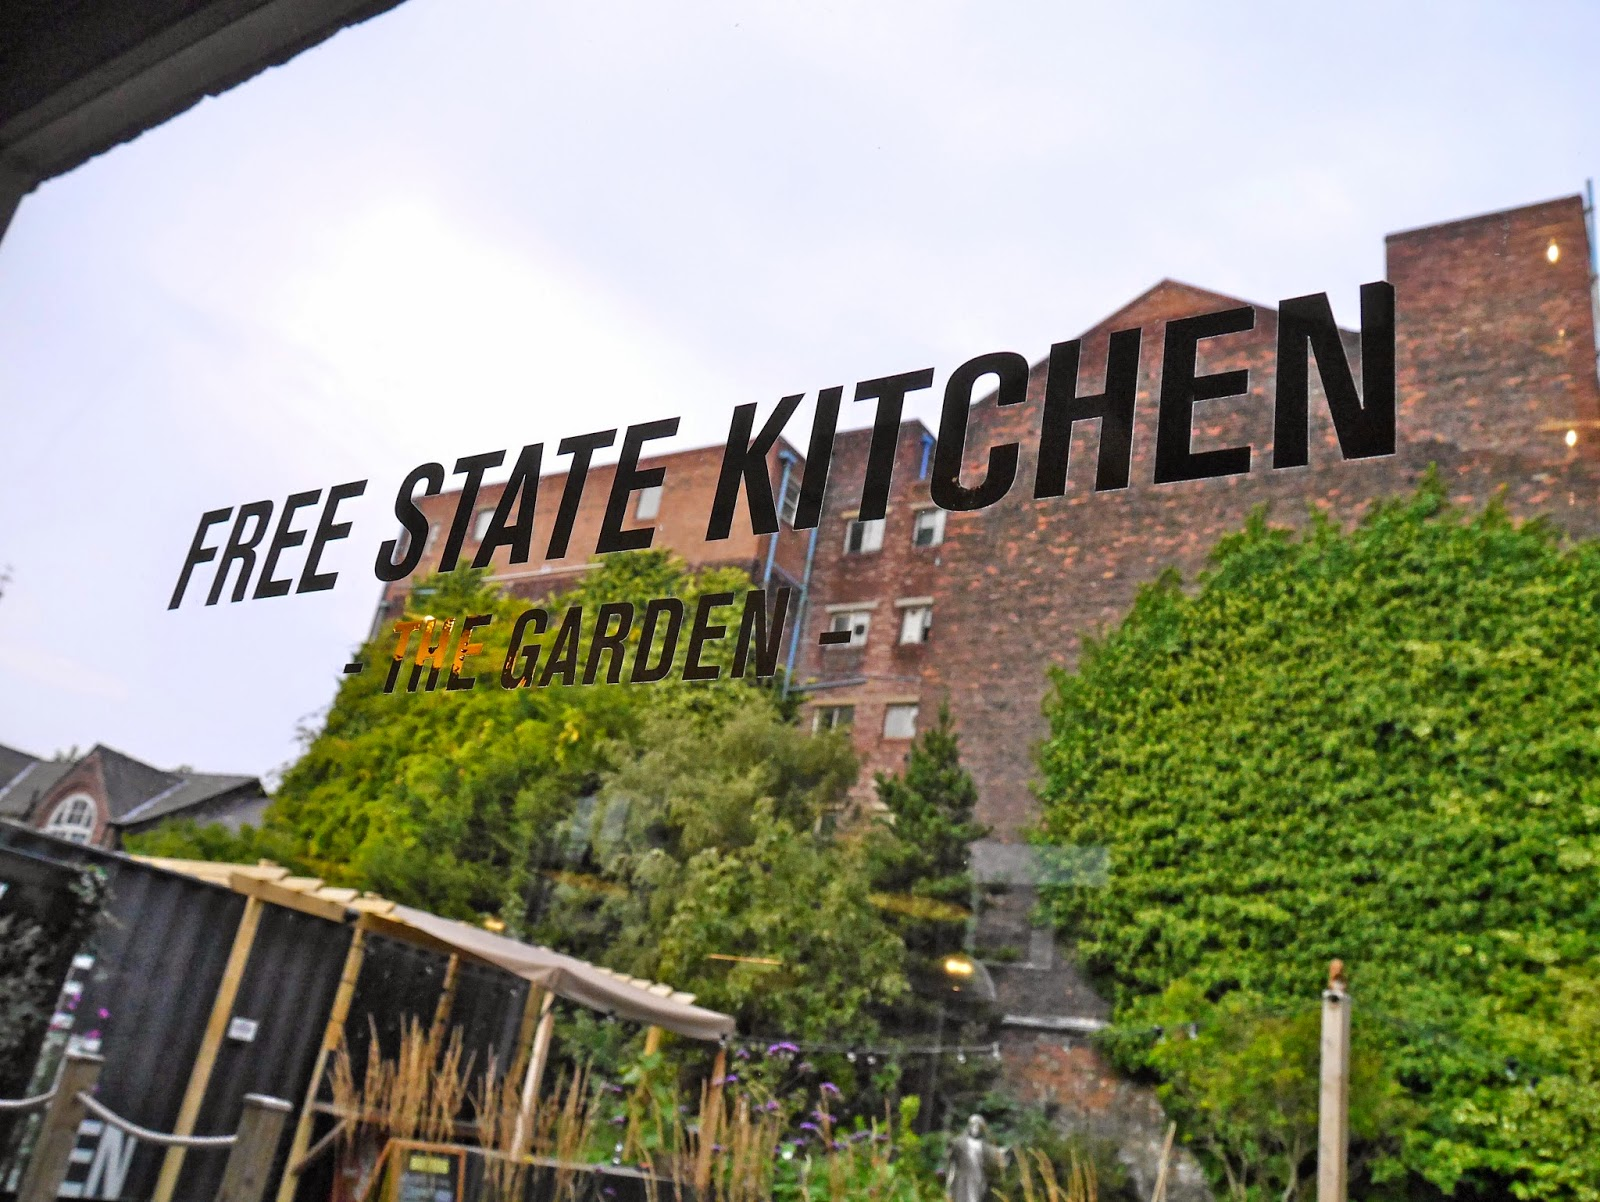 Free State Kitchen, Liverpool